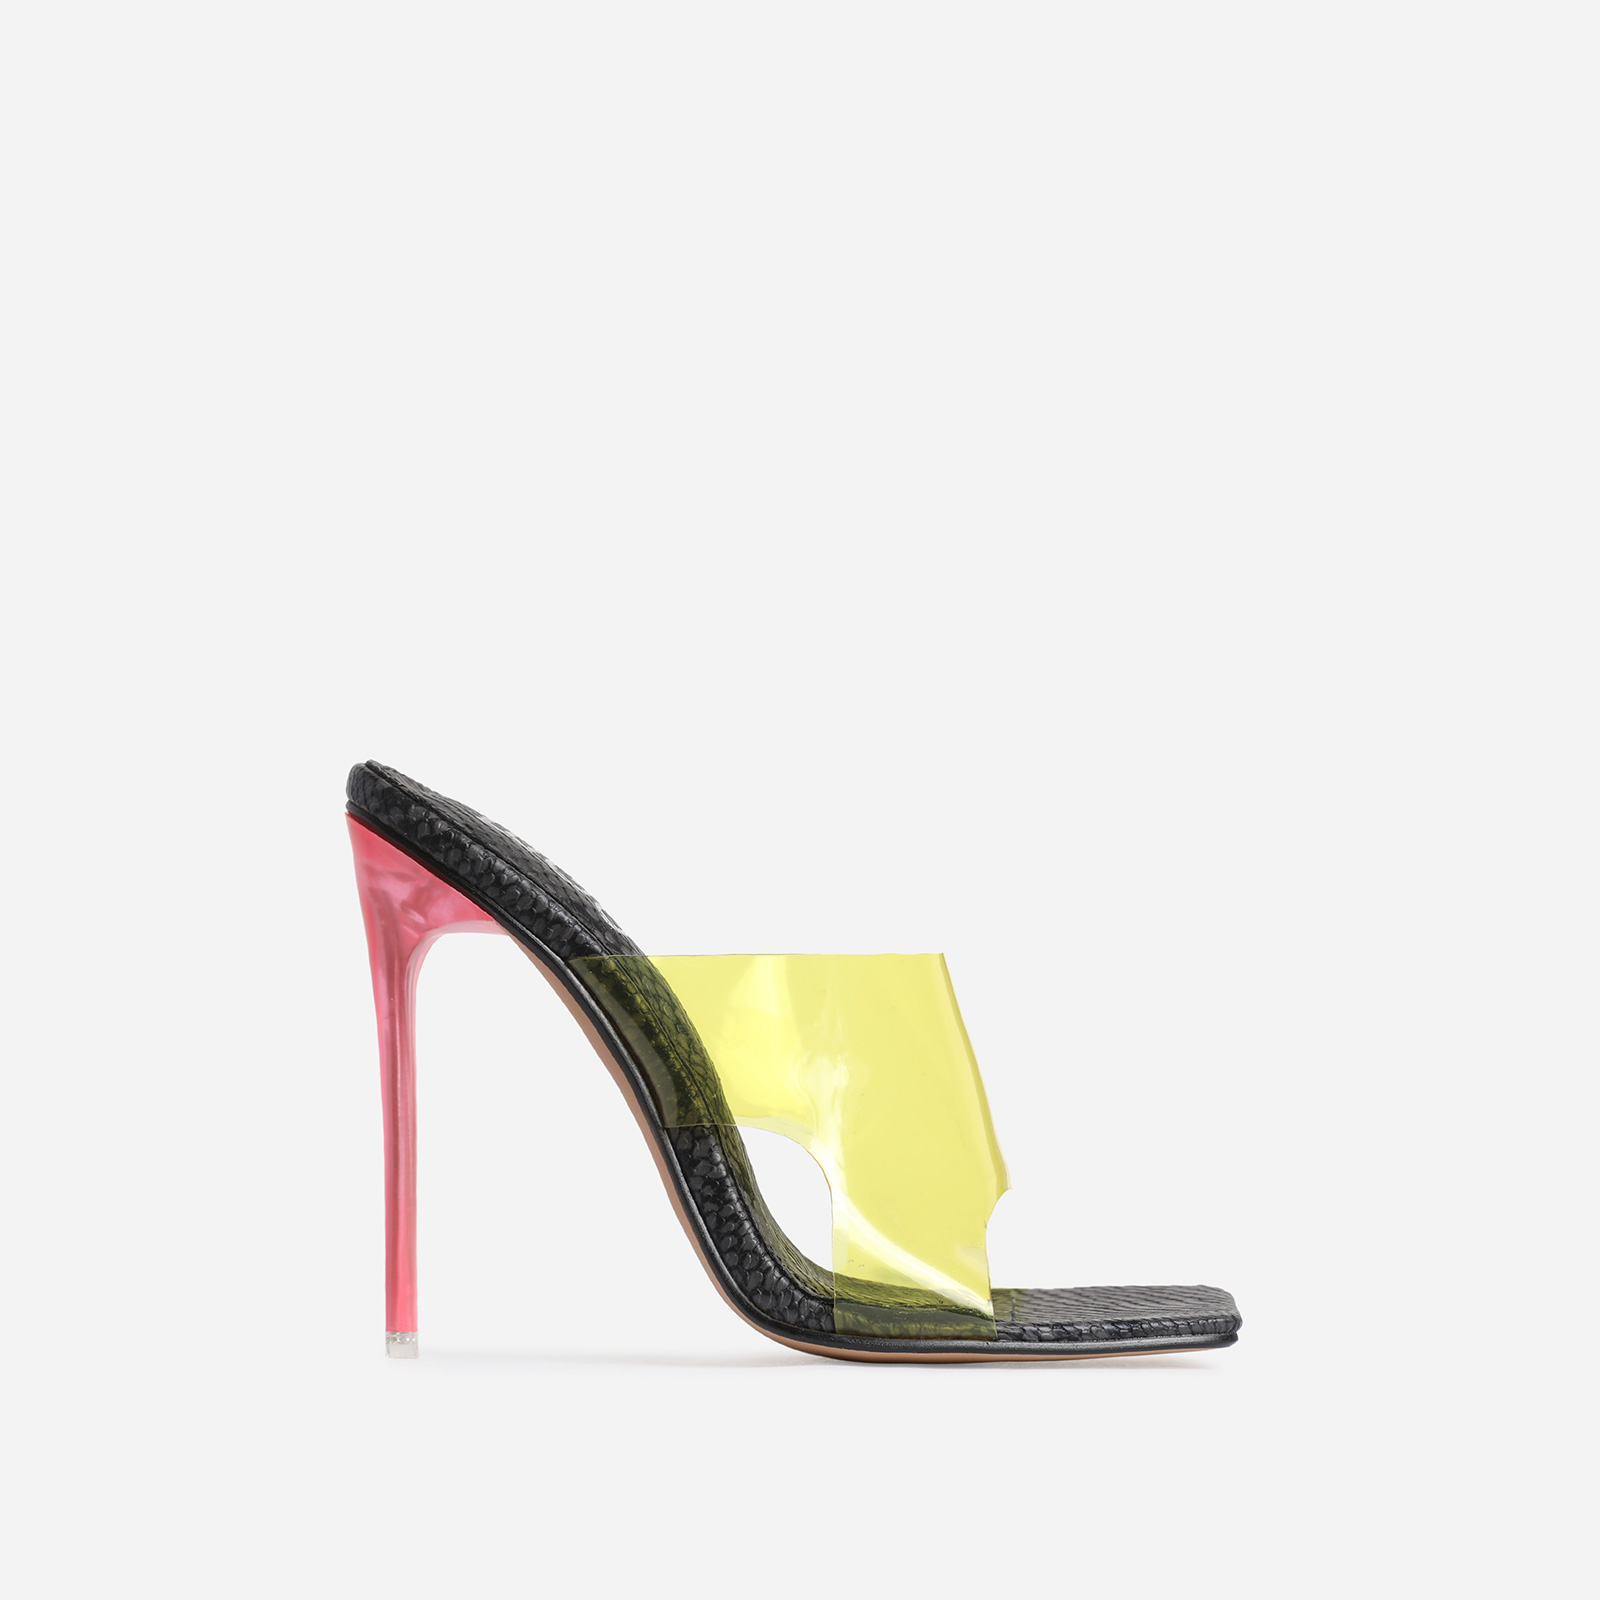 River Yellow Perspex Square Peep Toe Heel Mule In Black Snake Print Faux Leather